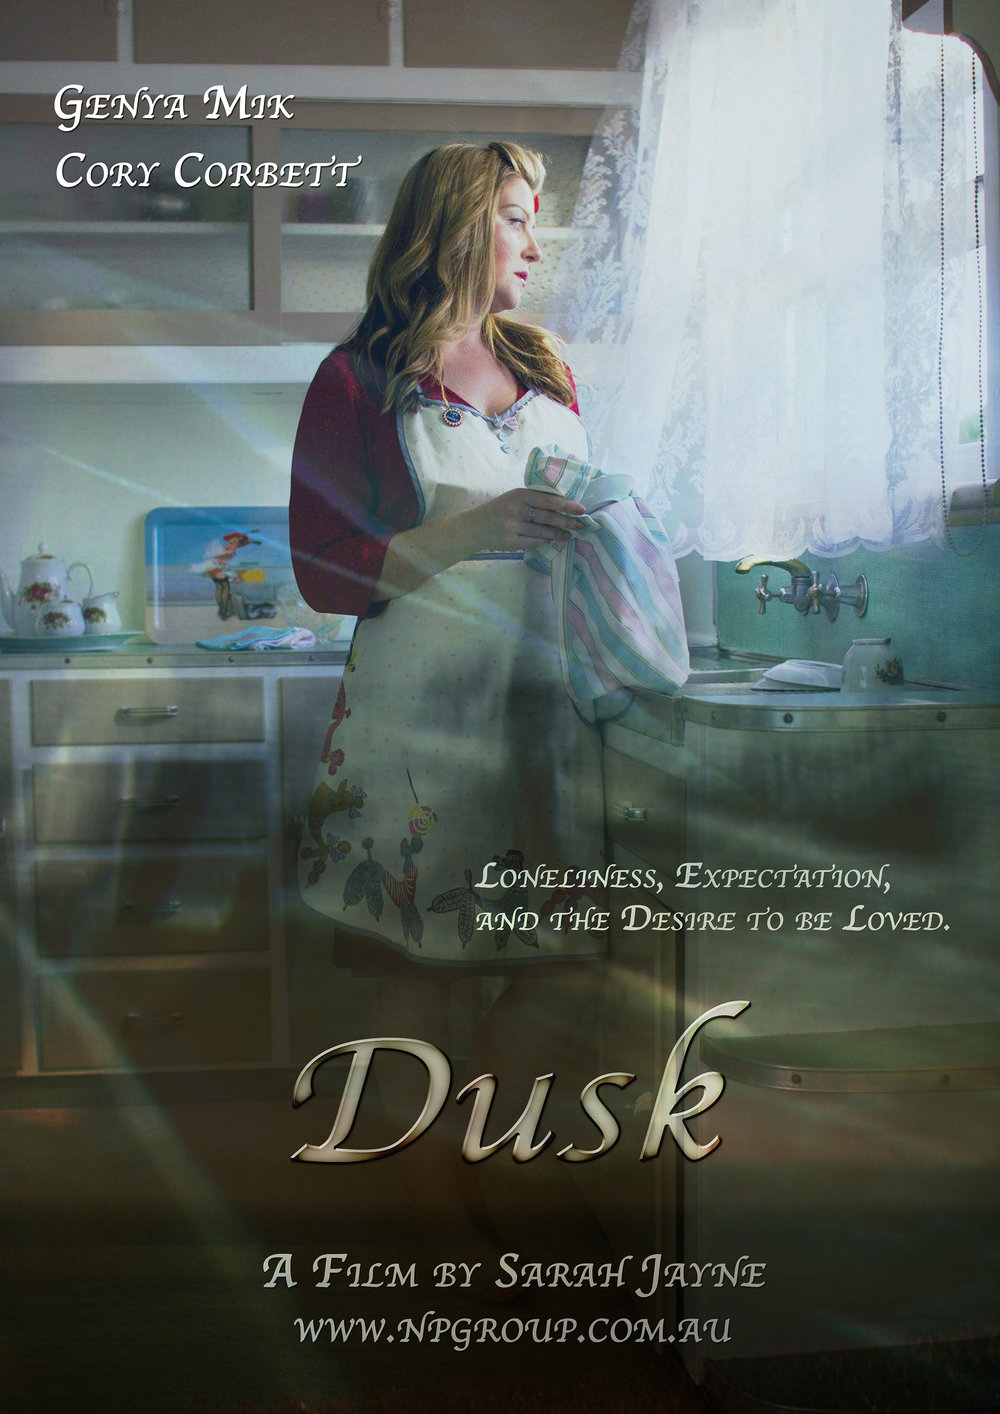 A disconnected & lonely woman struggles to fit society's mould - Dusk is an exploration of self image, self worth, the basic human need to connect.